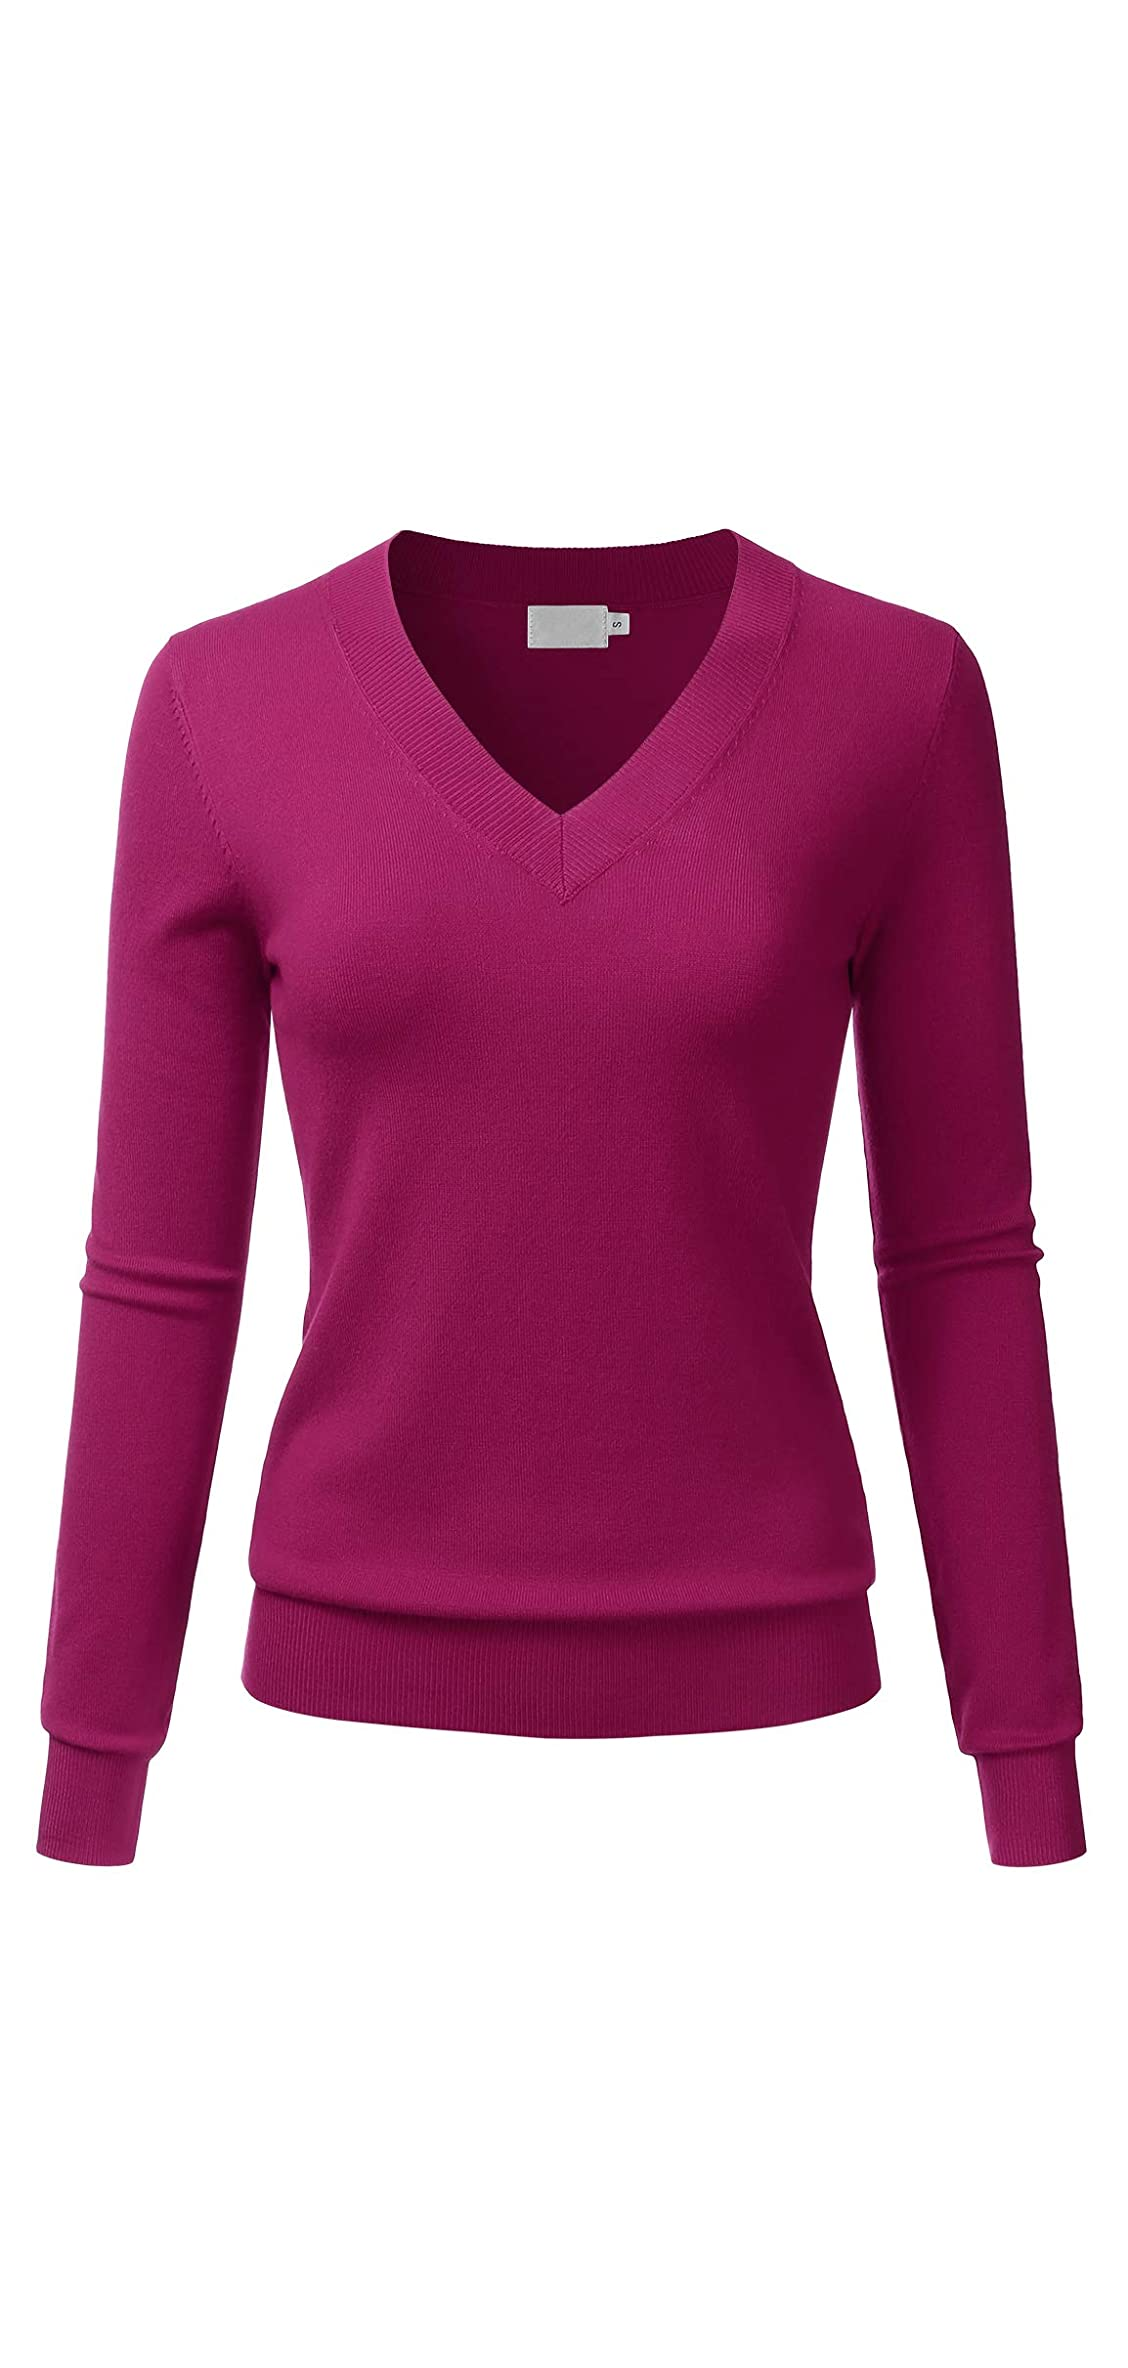 Women's V-neck Long Sleeve Soft Stretch Pullover Knit